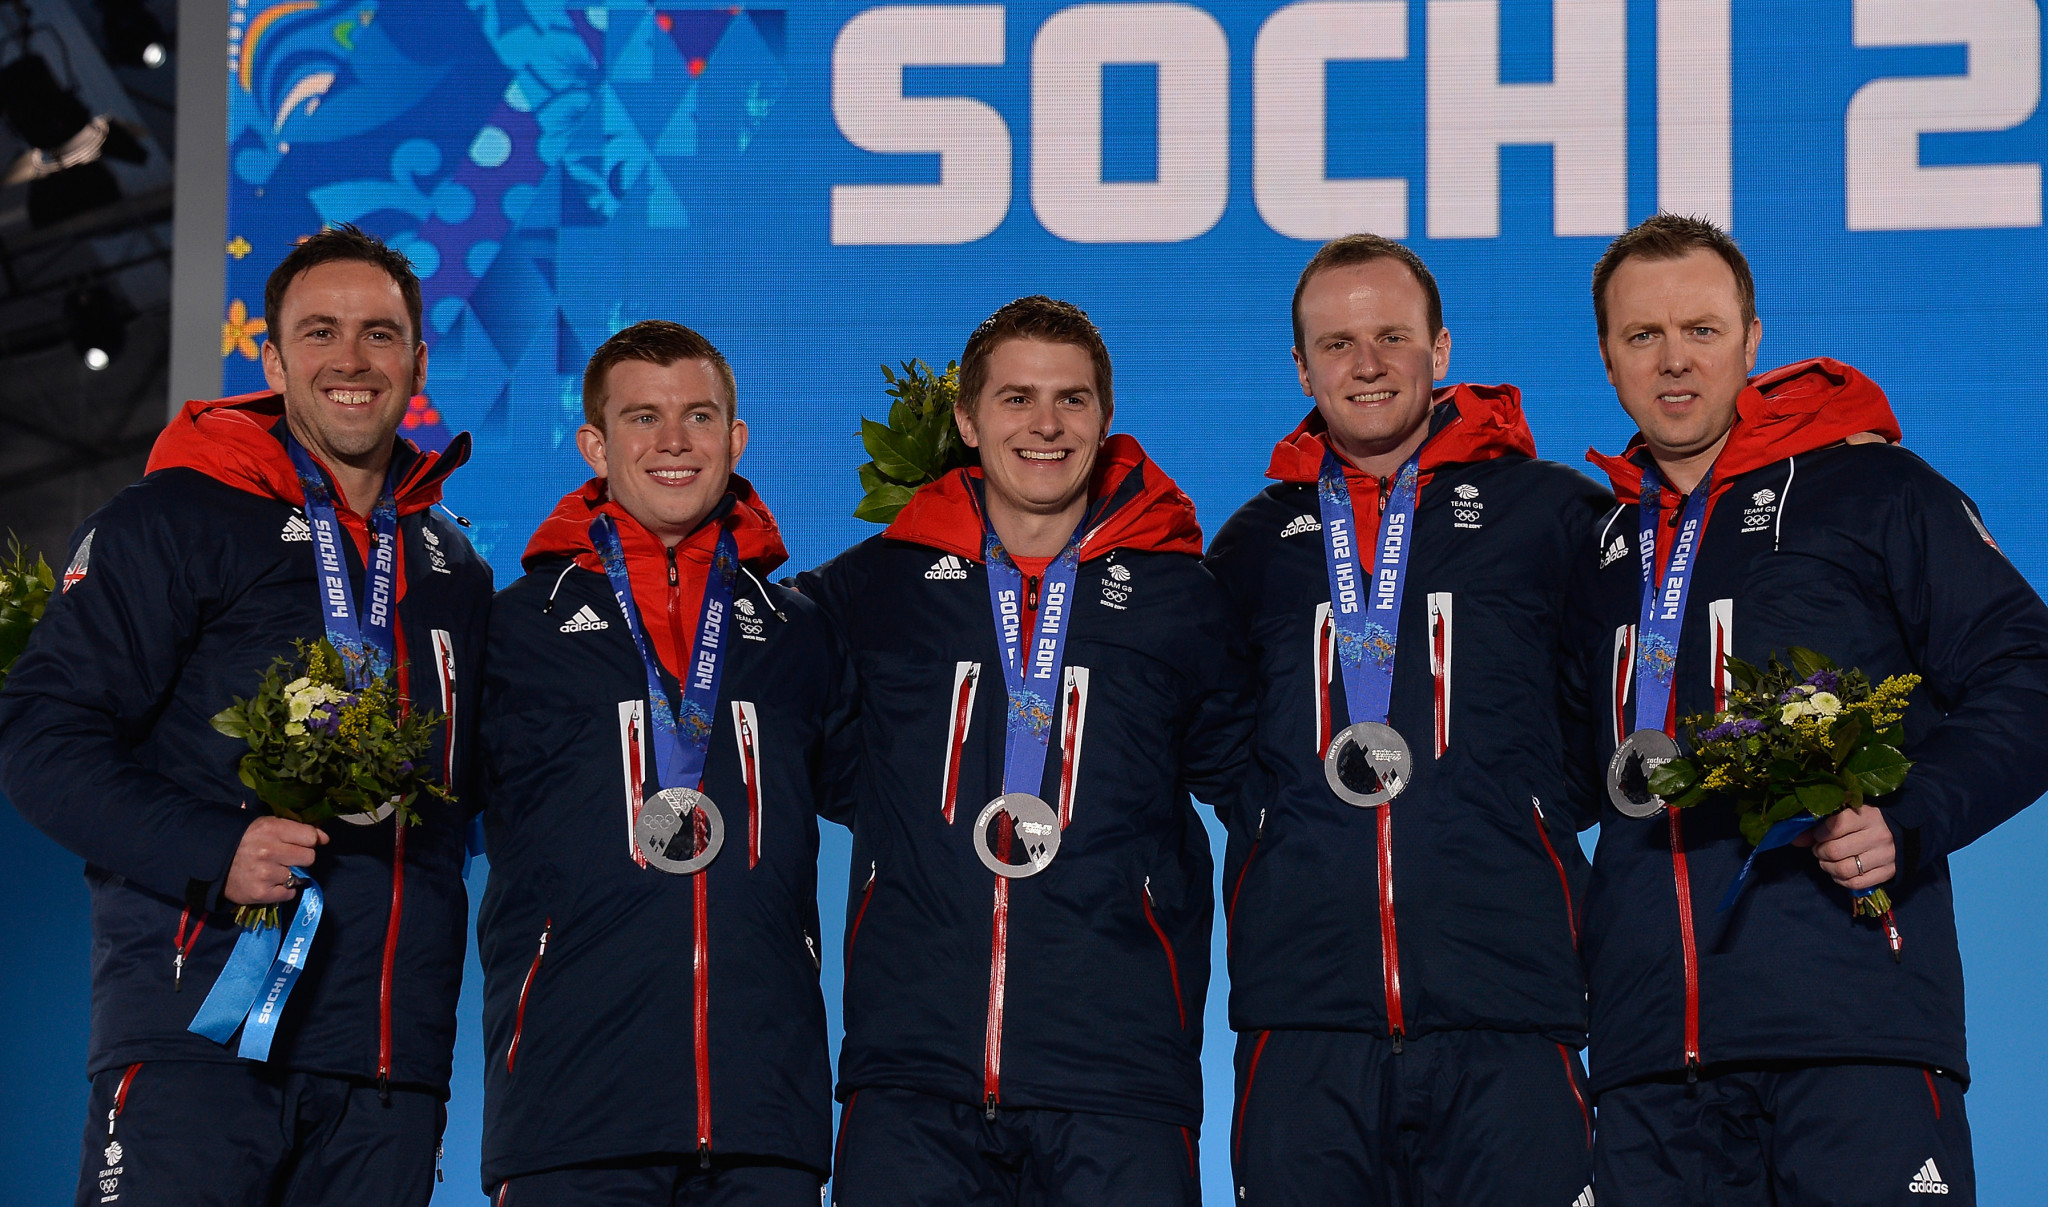 Britain's men's team won silver at the Sochi 2014 Winter Olympic Games ©Getty Images